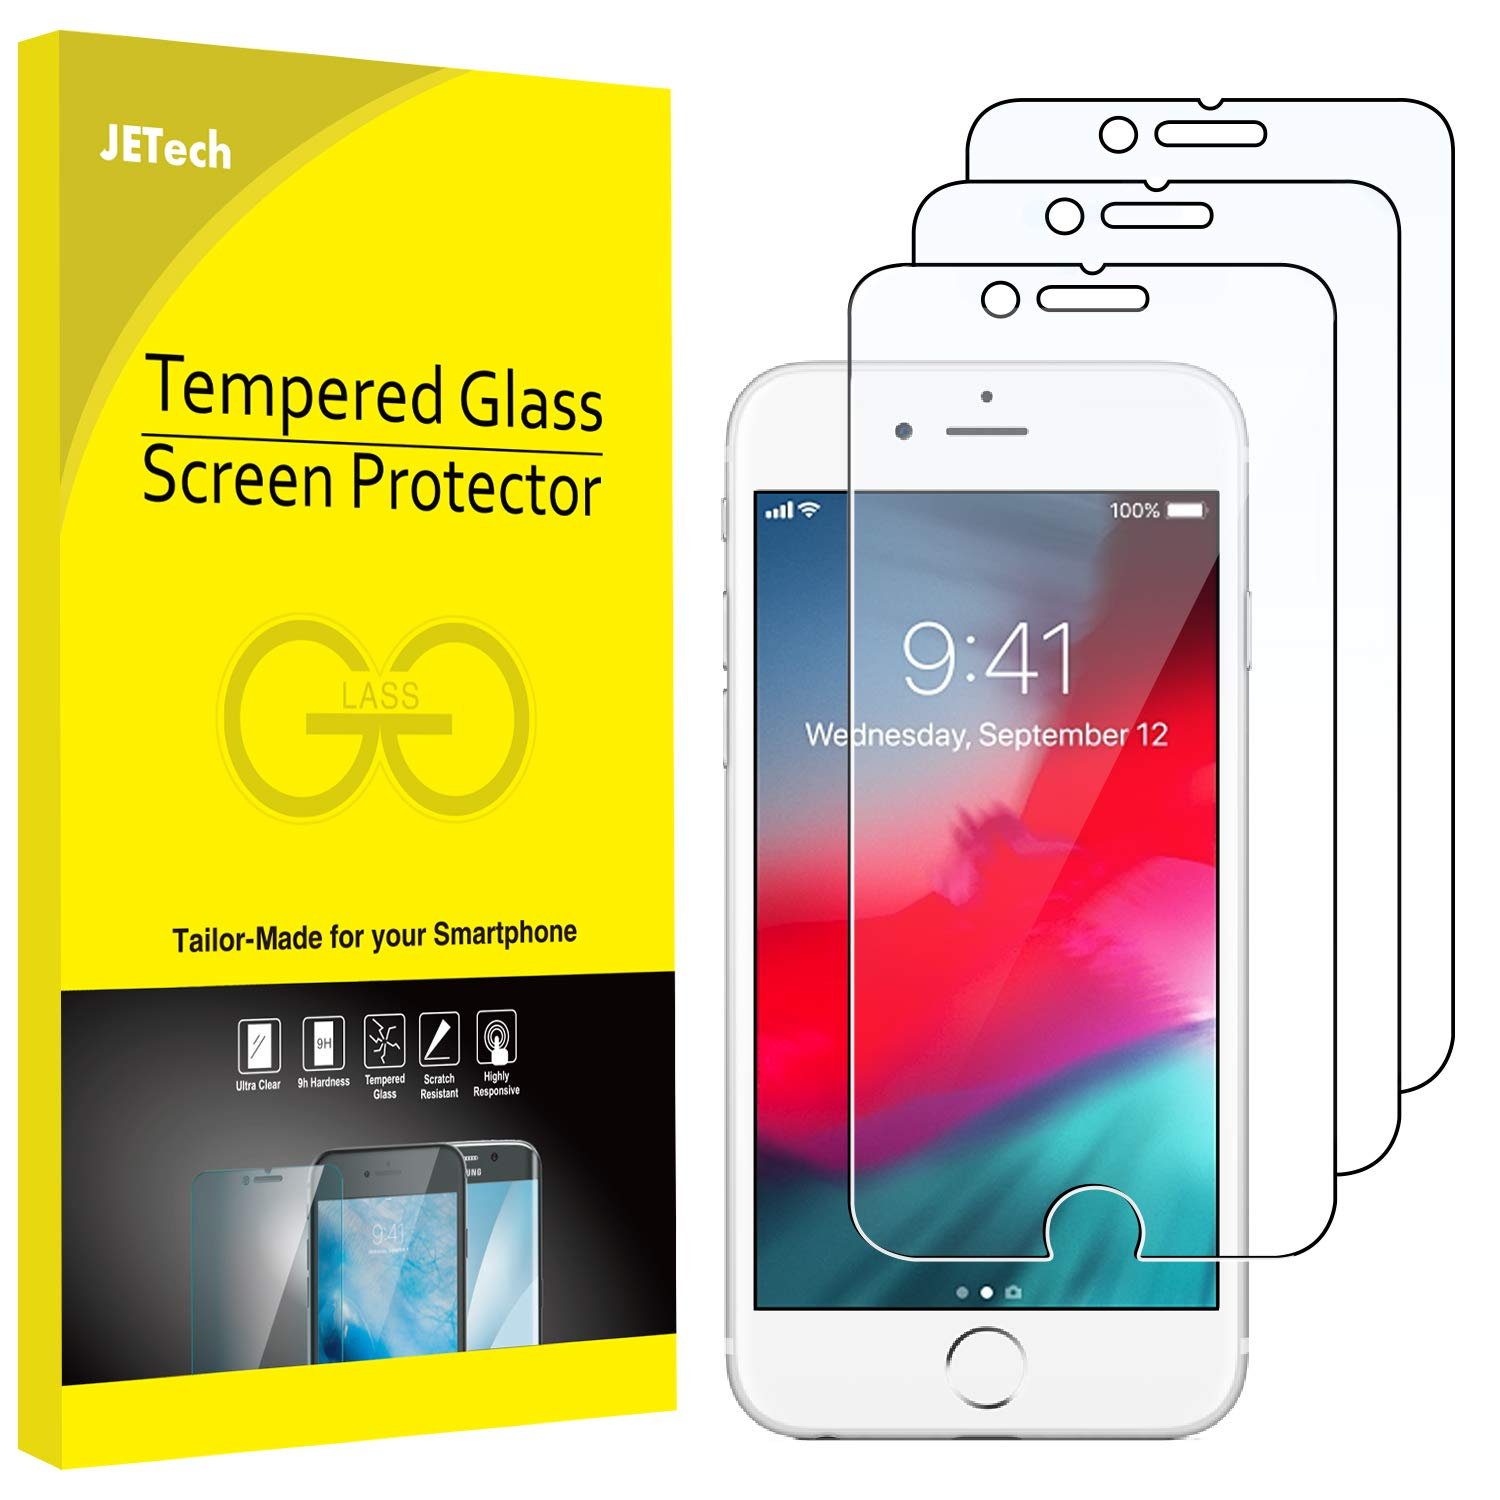 new arrival 93e49 f196e JETech 3-Pack Screen Protector for Apple iPhone 8, iPhone 7, iPhone 6s, and  iPhone 6, Tempered Glass Film, 4.7-Inch